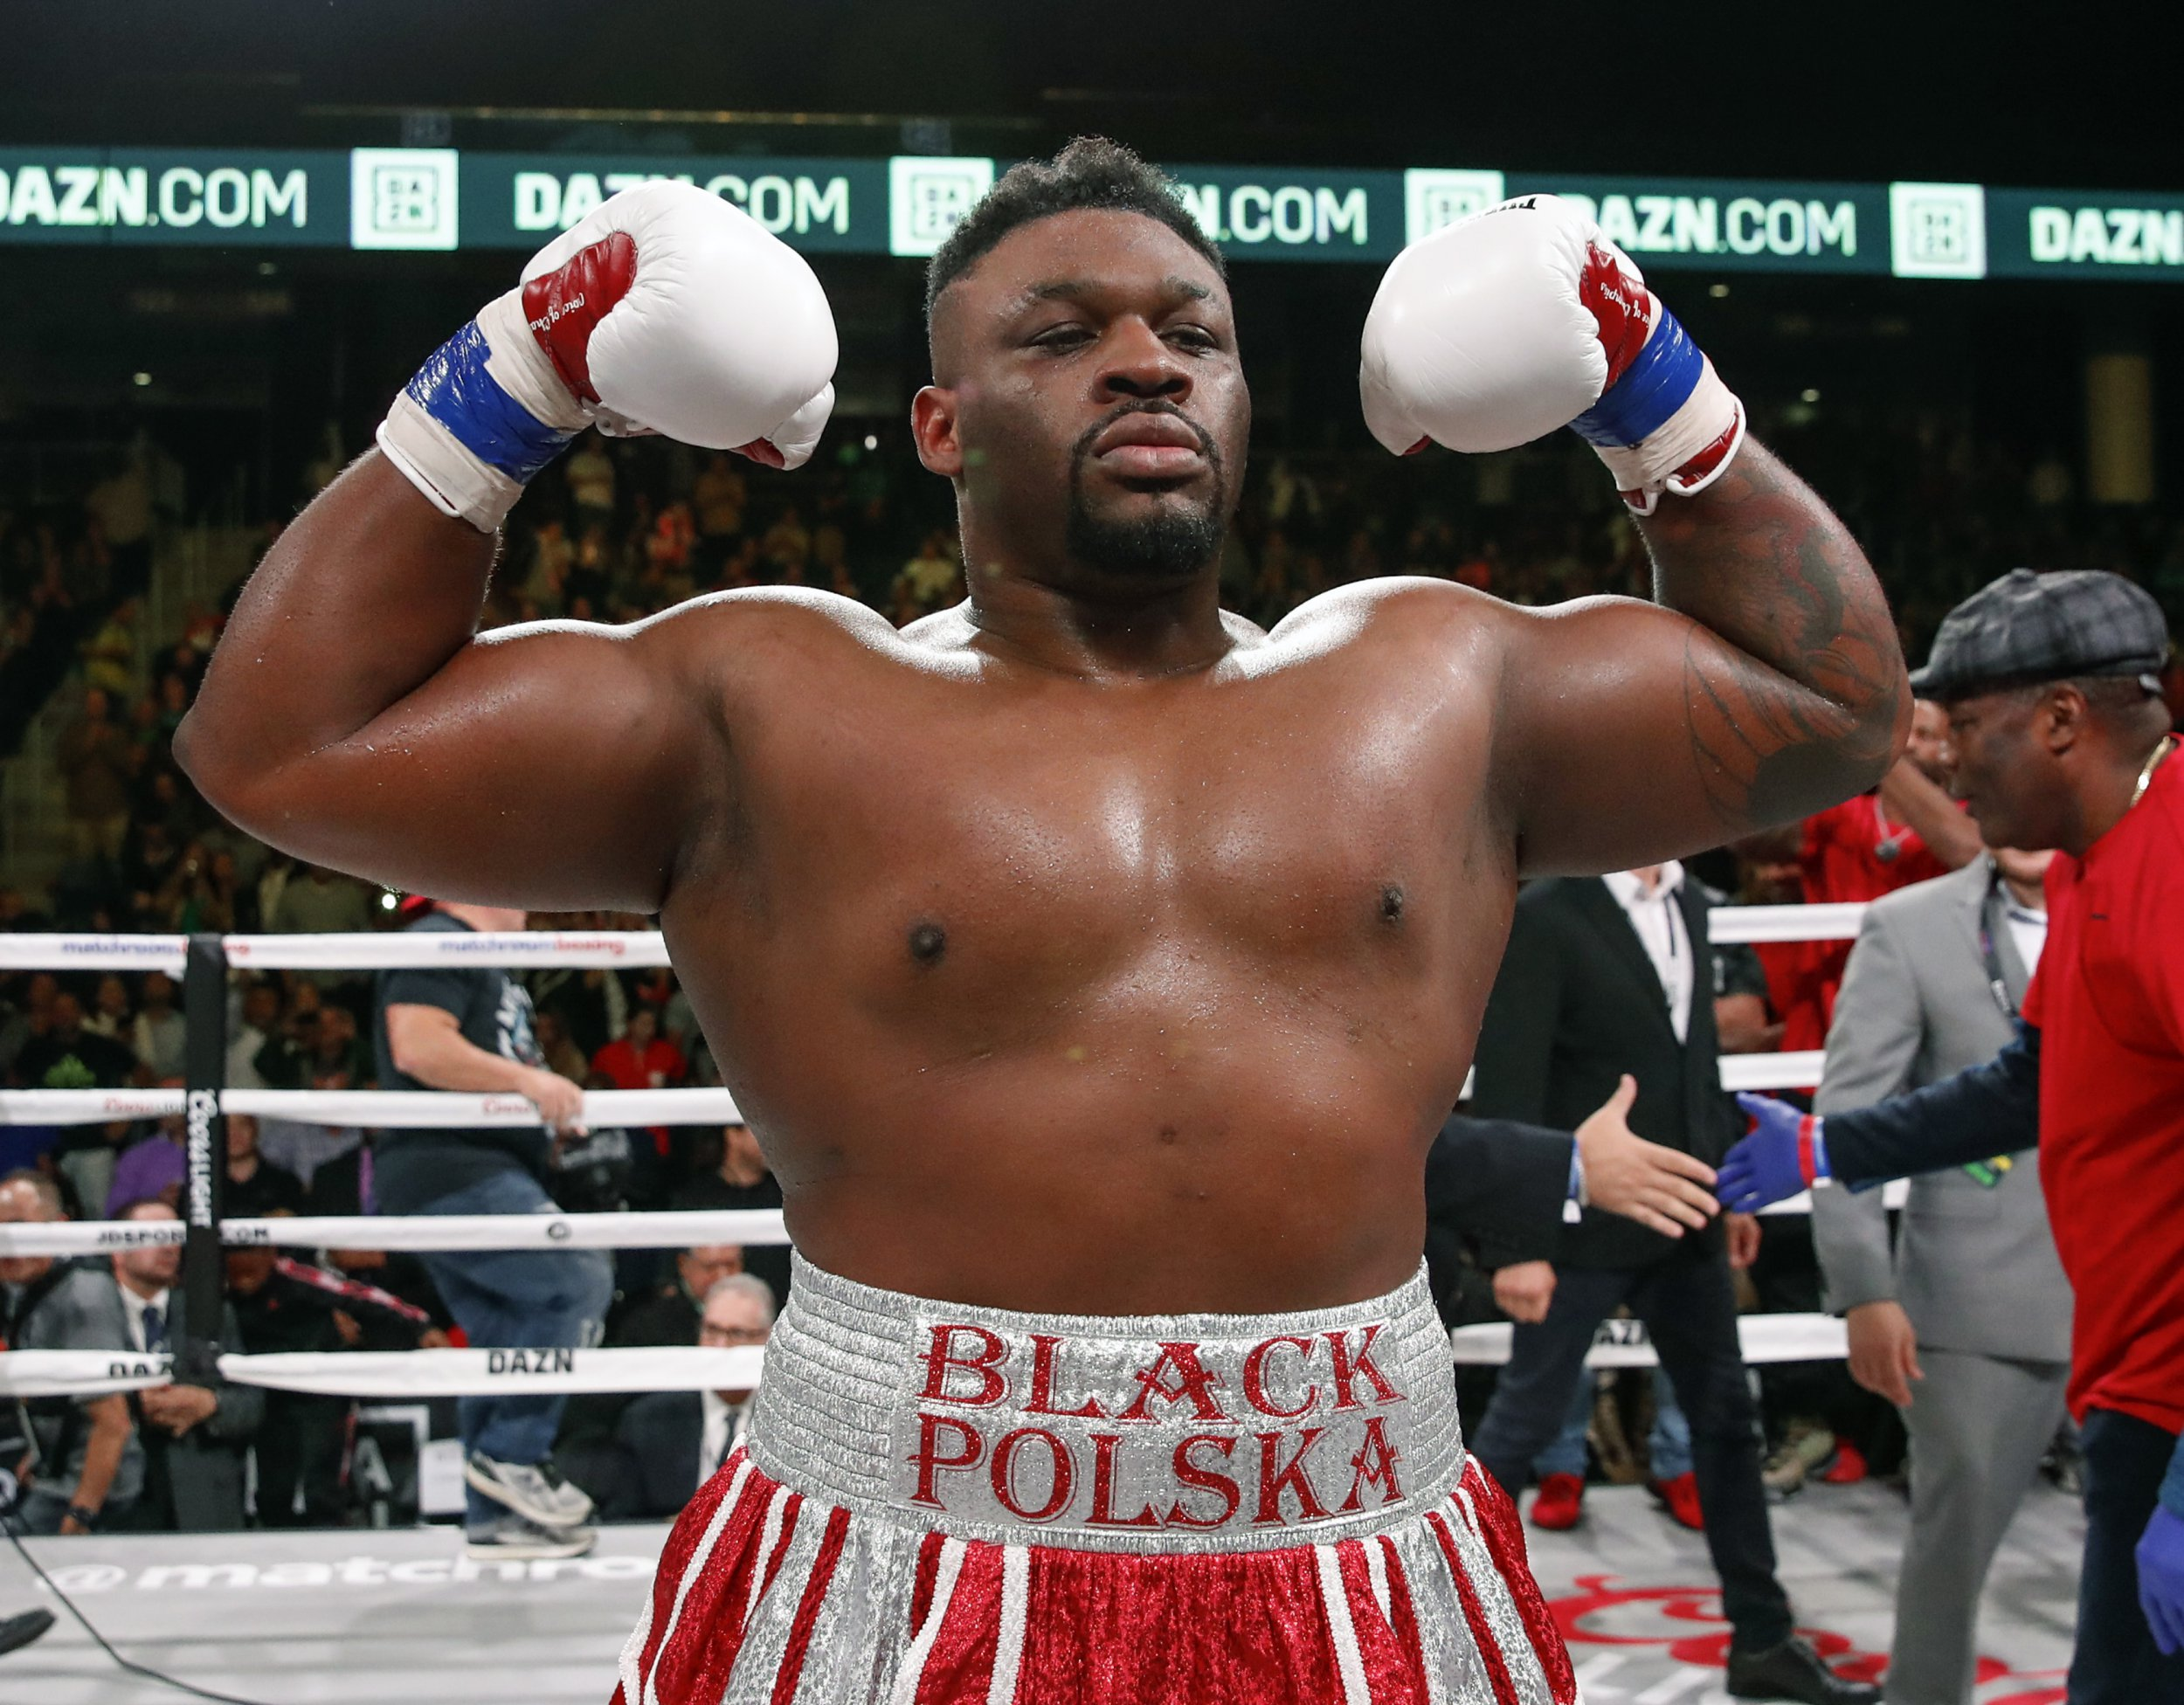 Jarrell Miller celebrates after defeating Tomasz Adamek, of Poland, during a heavyweight boxing match Saturday, Oct. 6, 2018, in Chicago. (AP Photo/Kamil Krzaczynski)